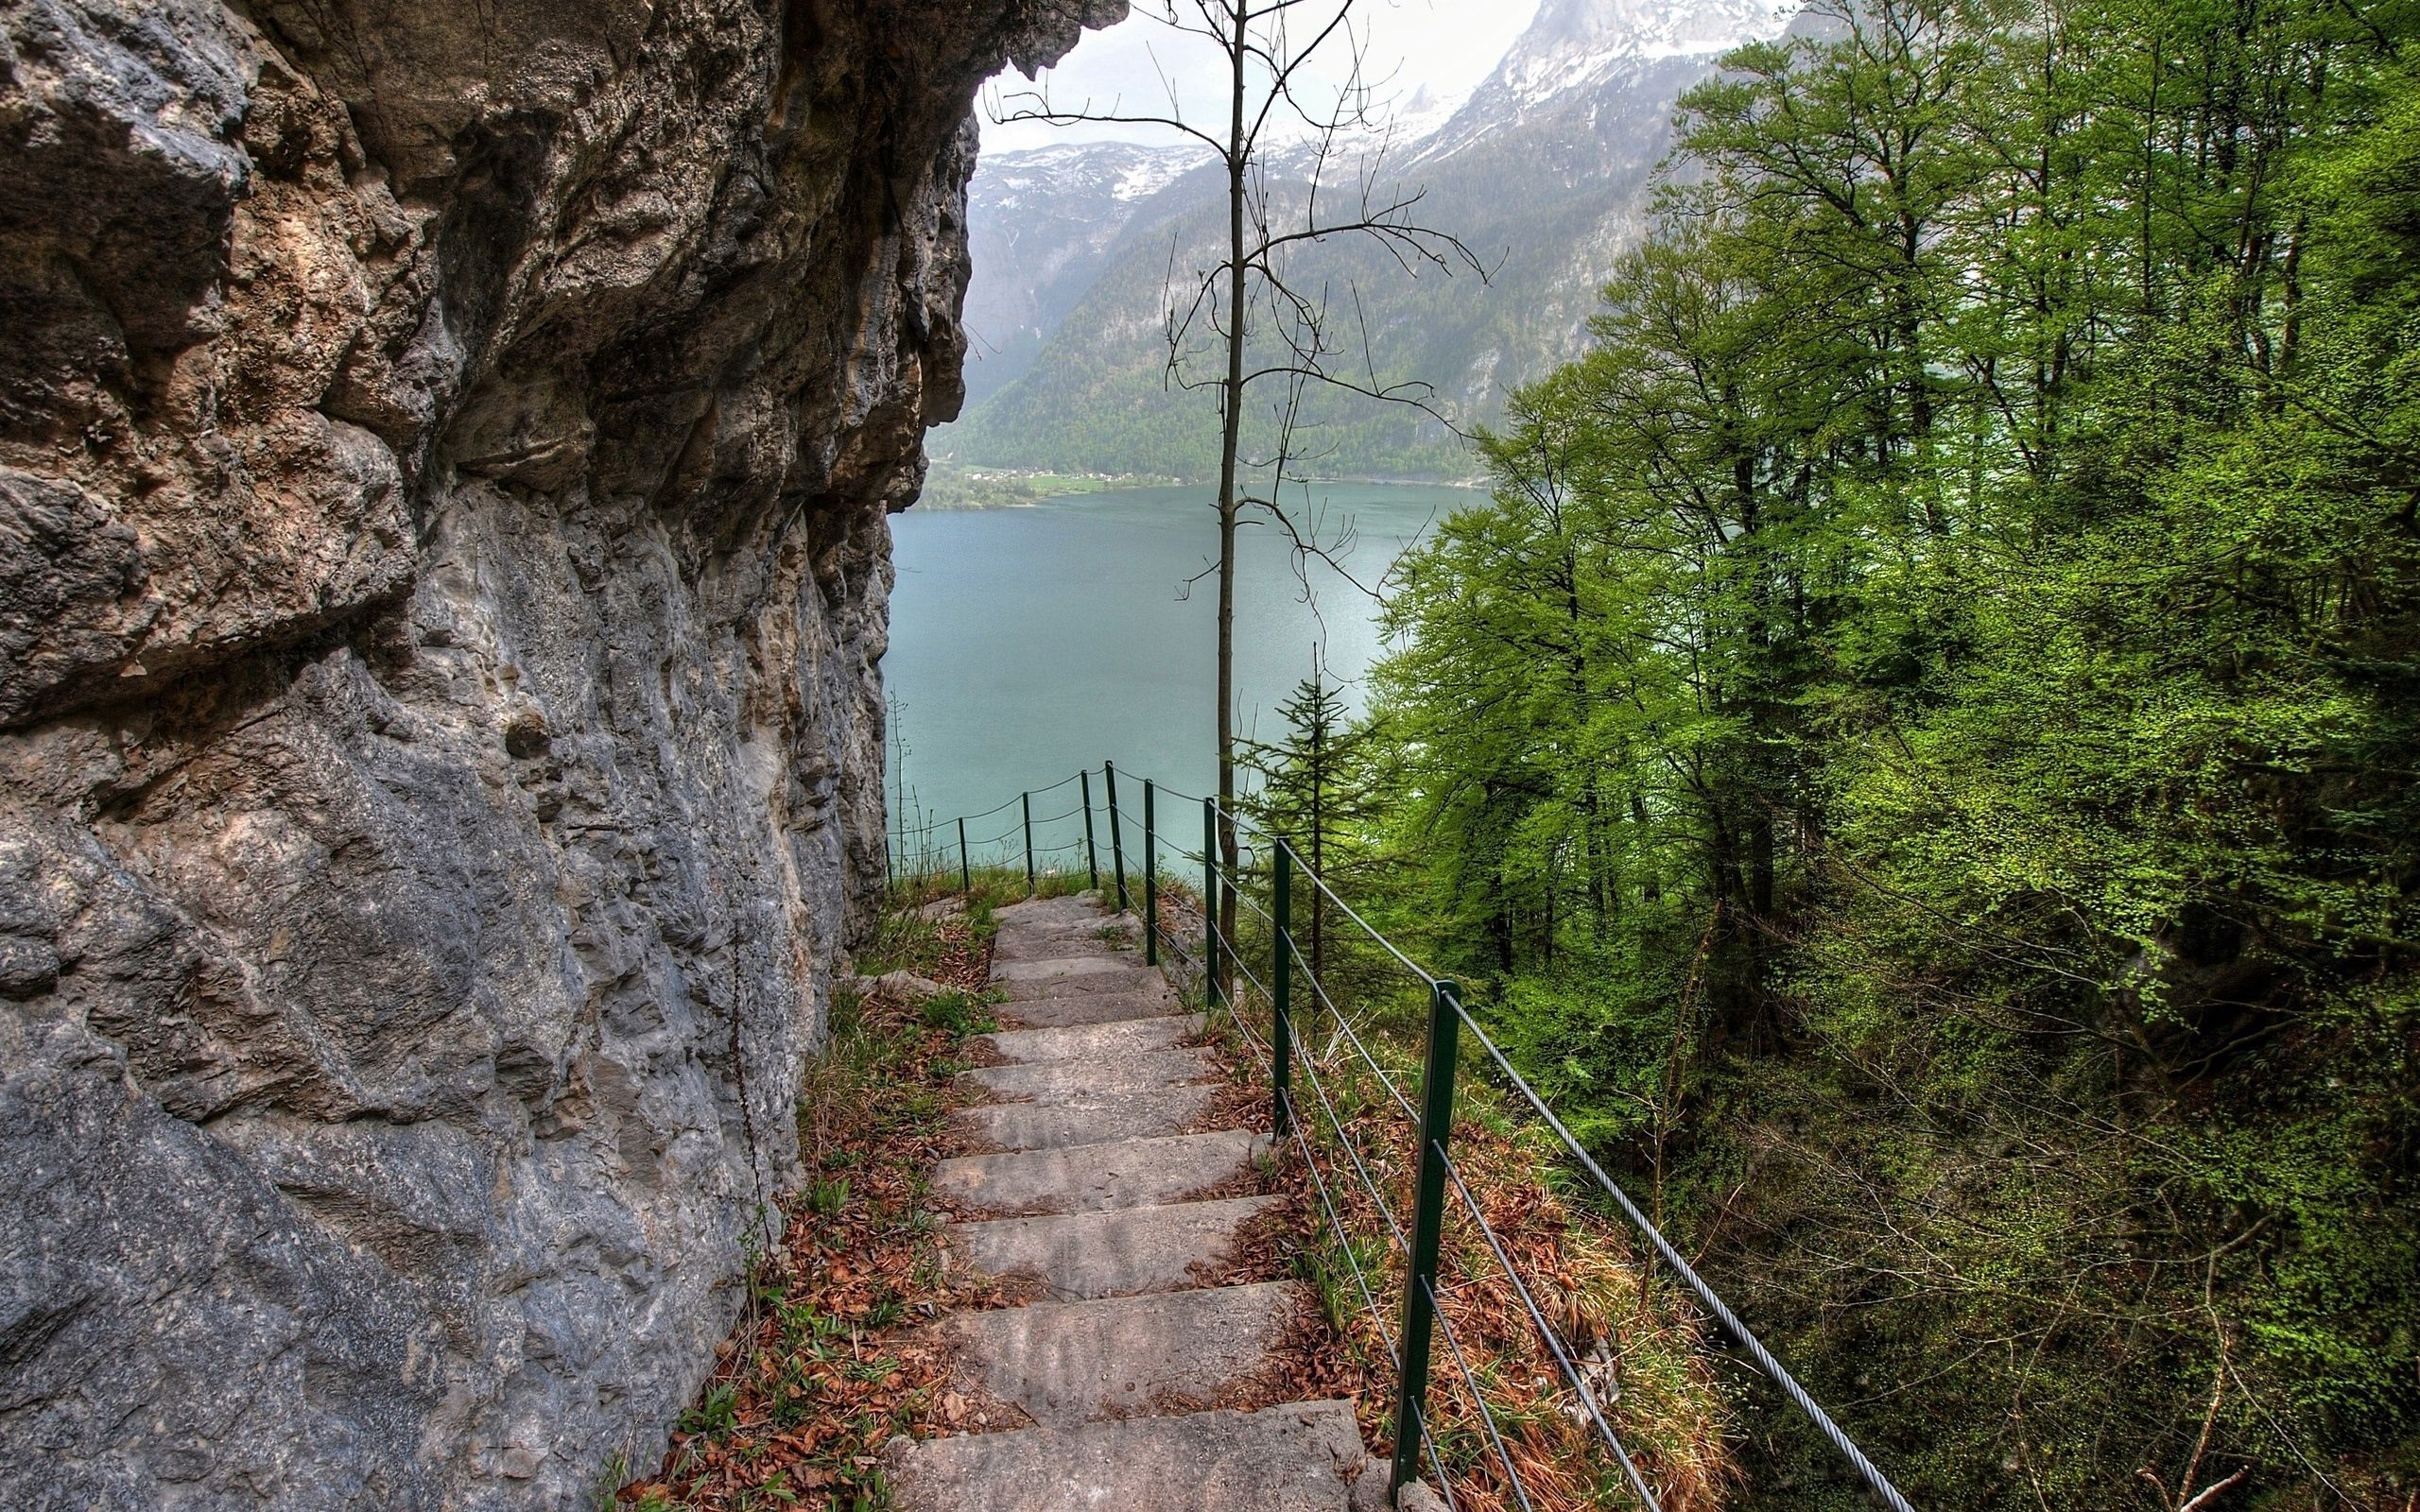 117200 download wallpaper Nature, Trees, Mountains, Rock, Lake, Steps, Descent screensavers and pictures for free